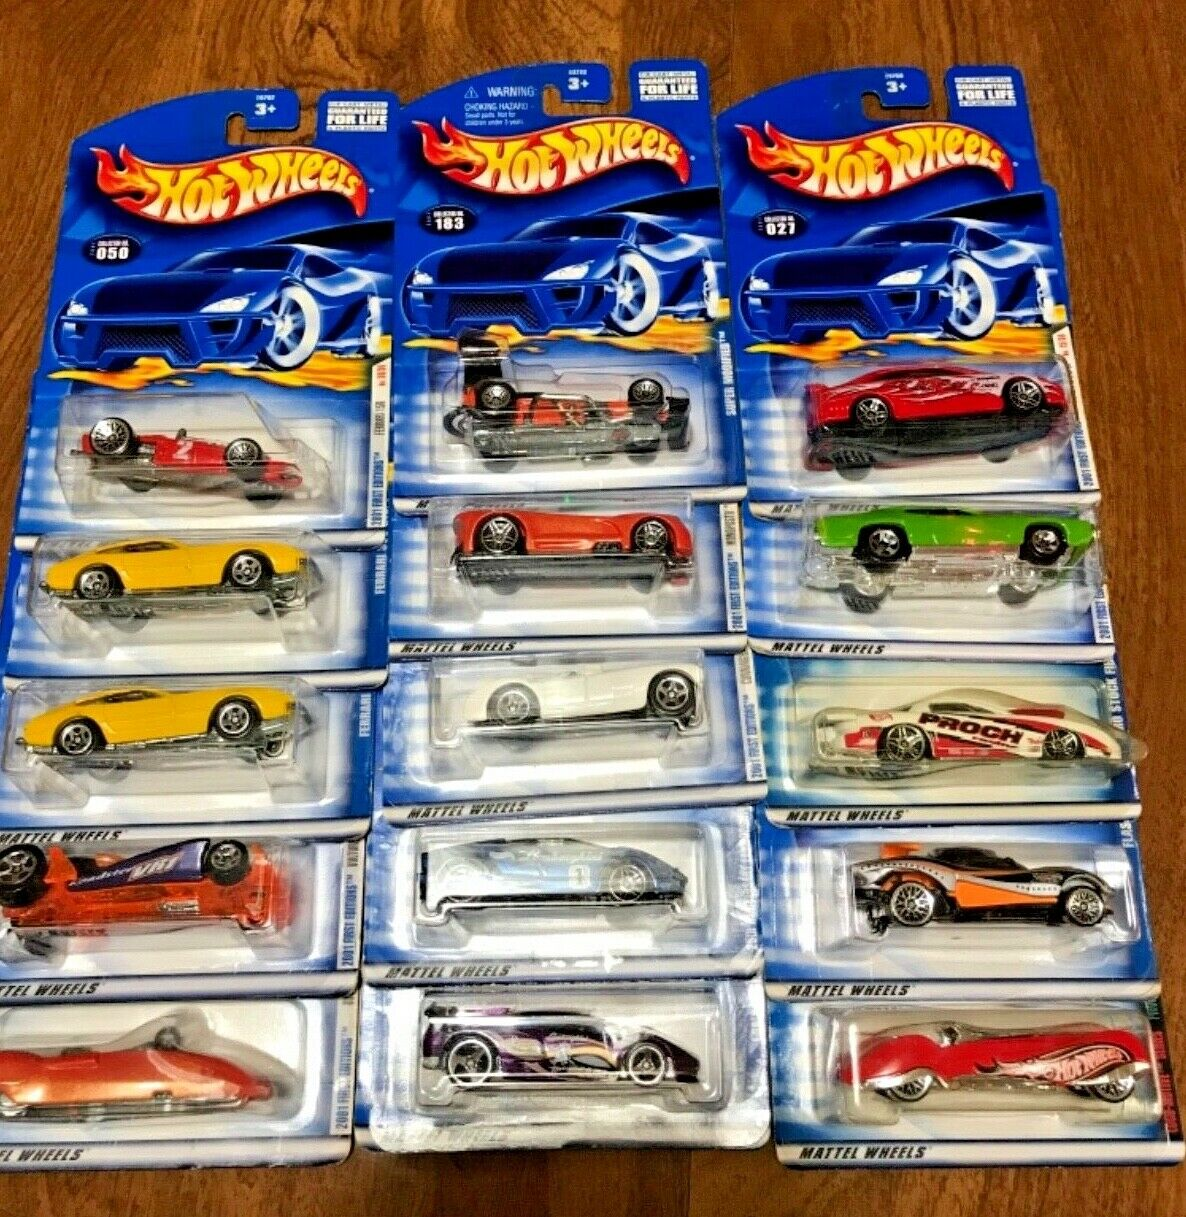 Hot Wheels LOT OF 15 MIXED Random Cars Mint on cards from 2000